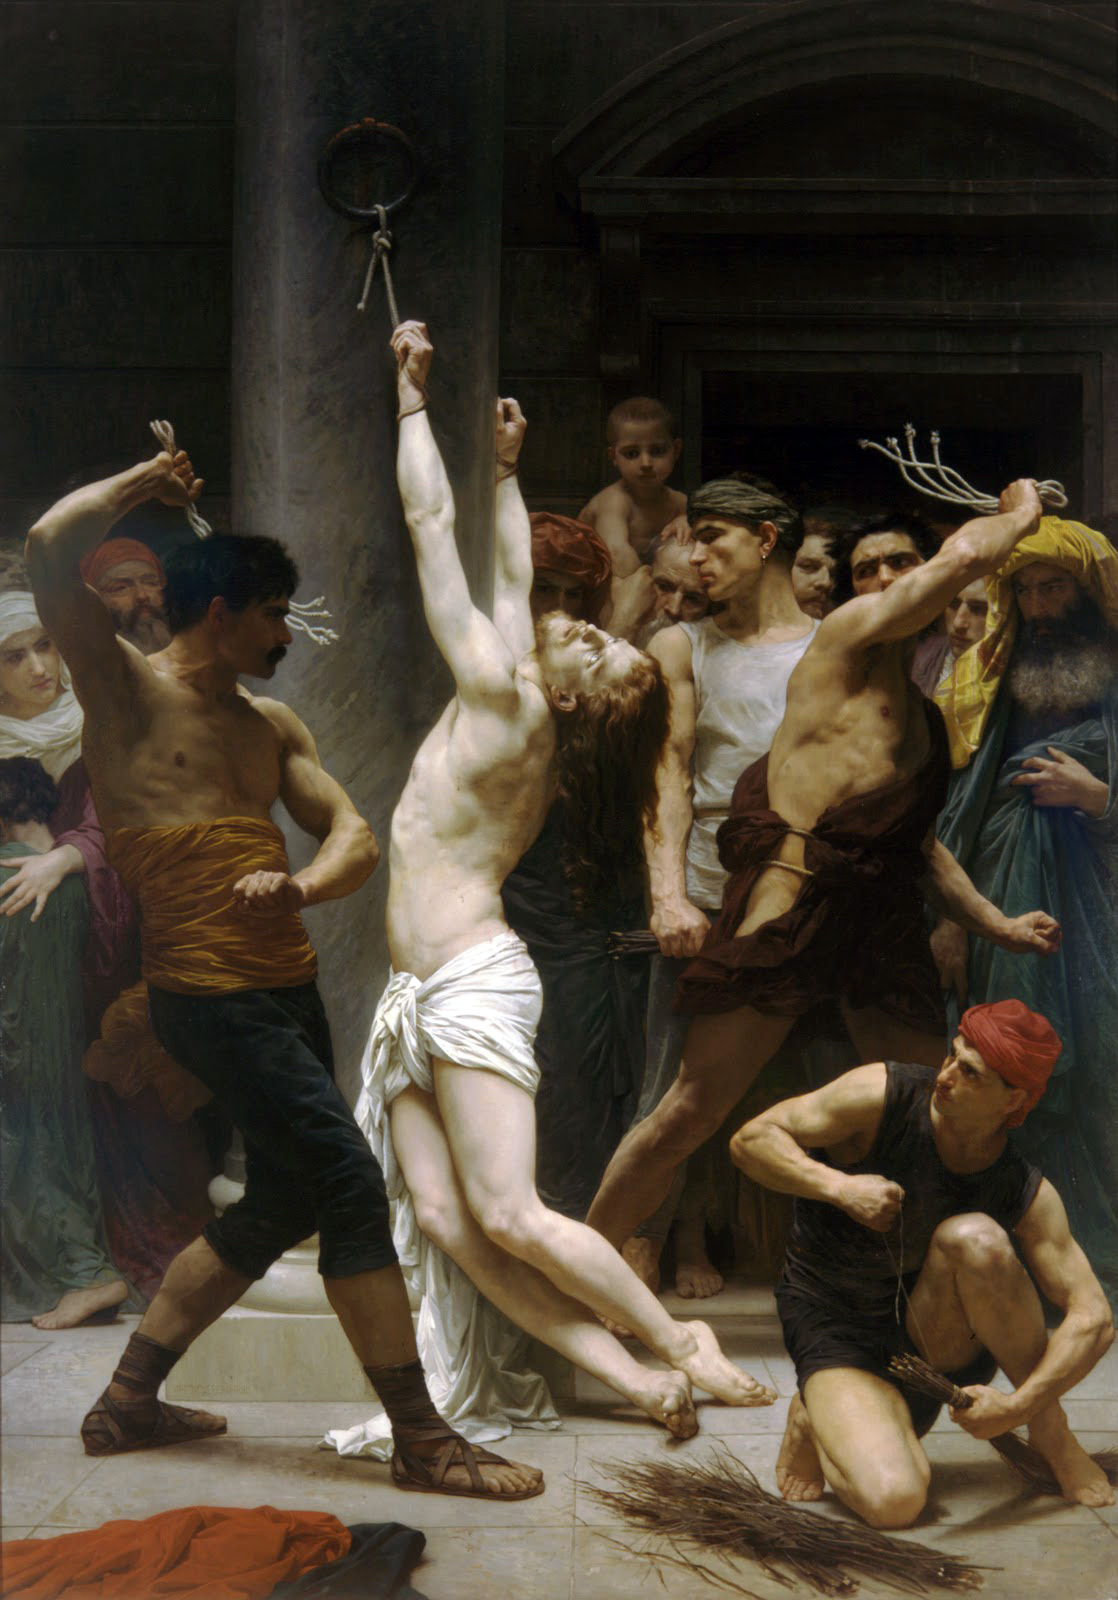 William-Adolphe Bouguereau 1825-1905 - The Flagellation of Our Lord Jesus Christ 1880